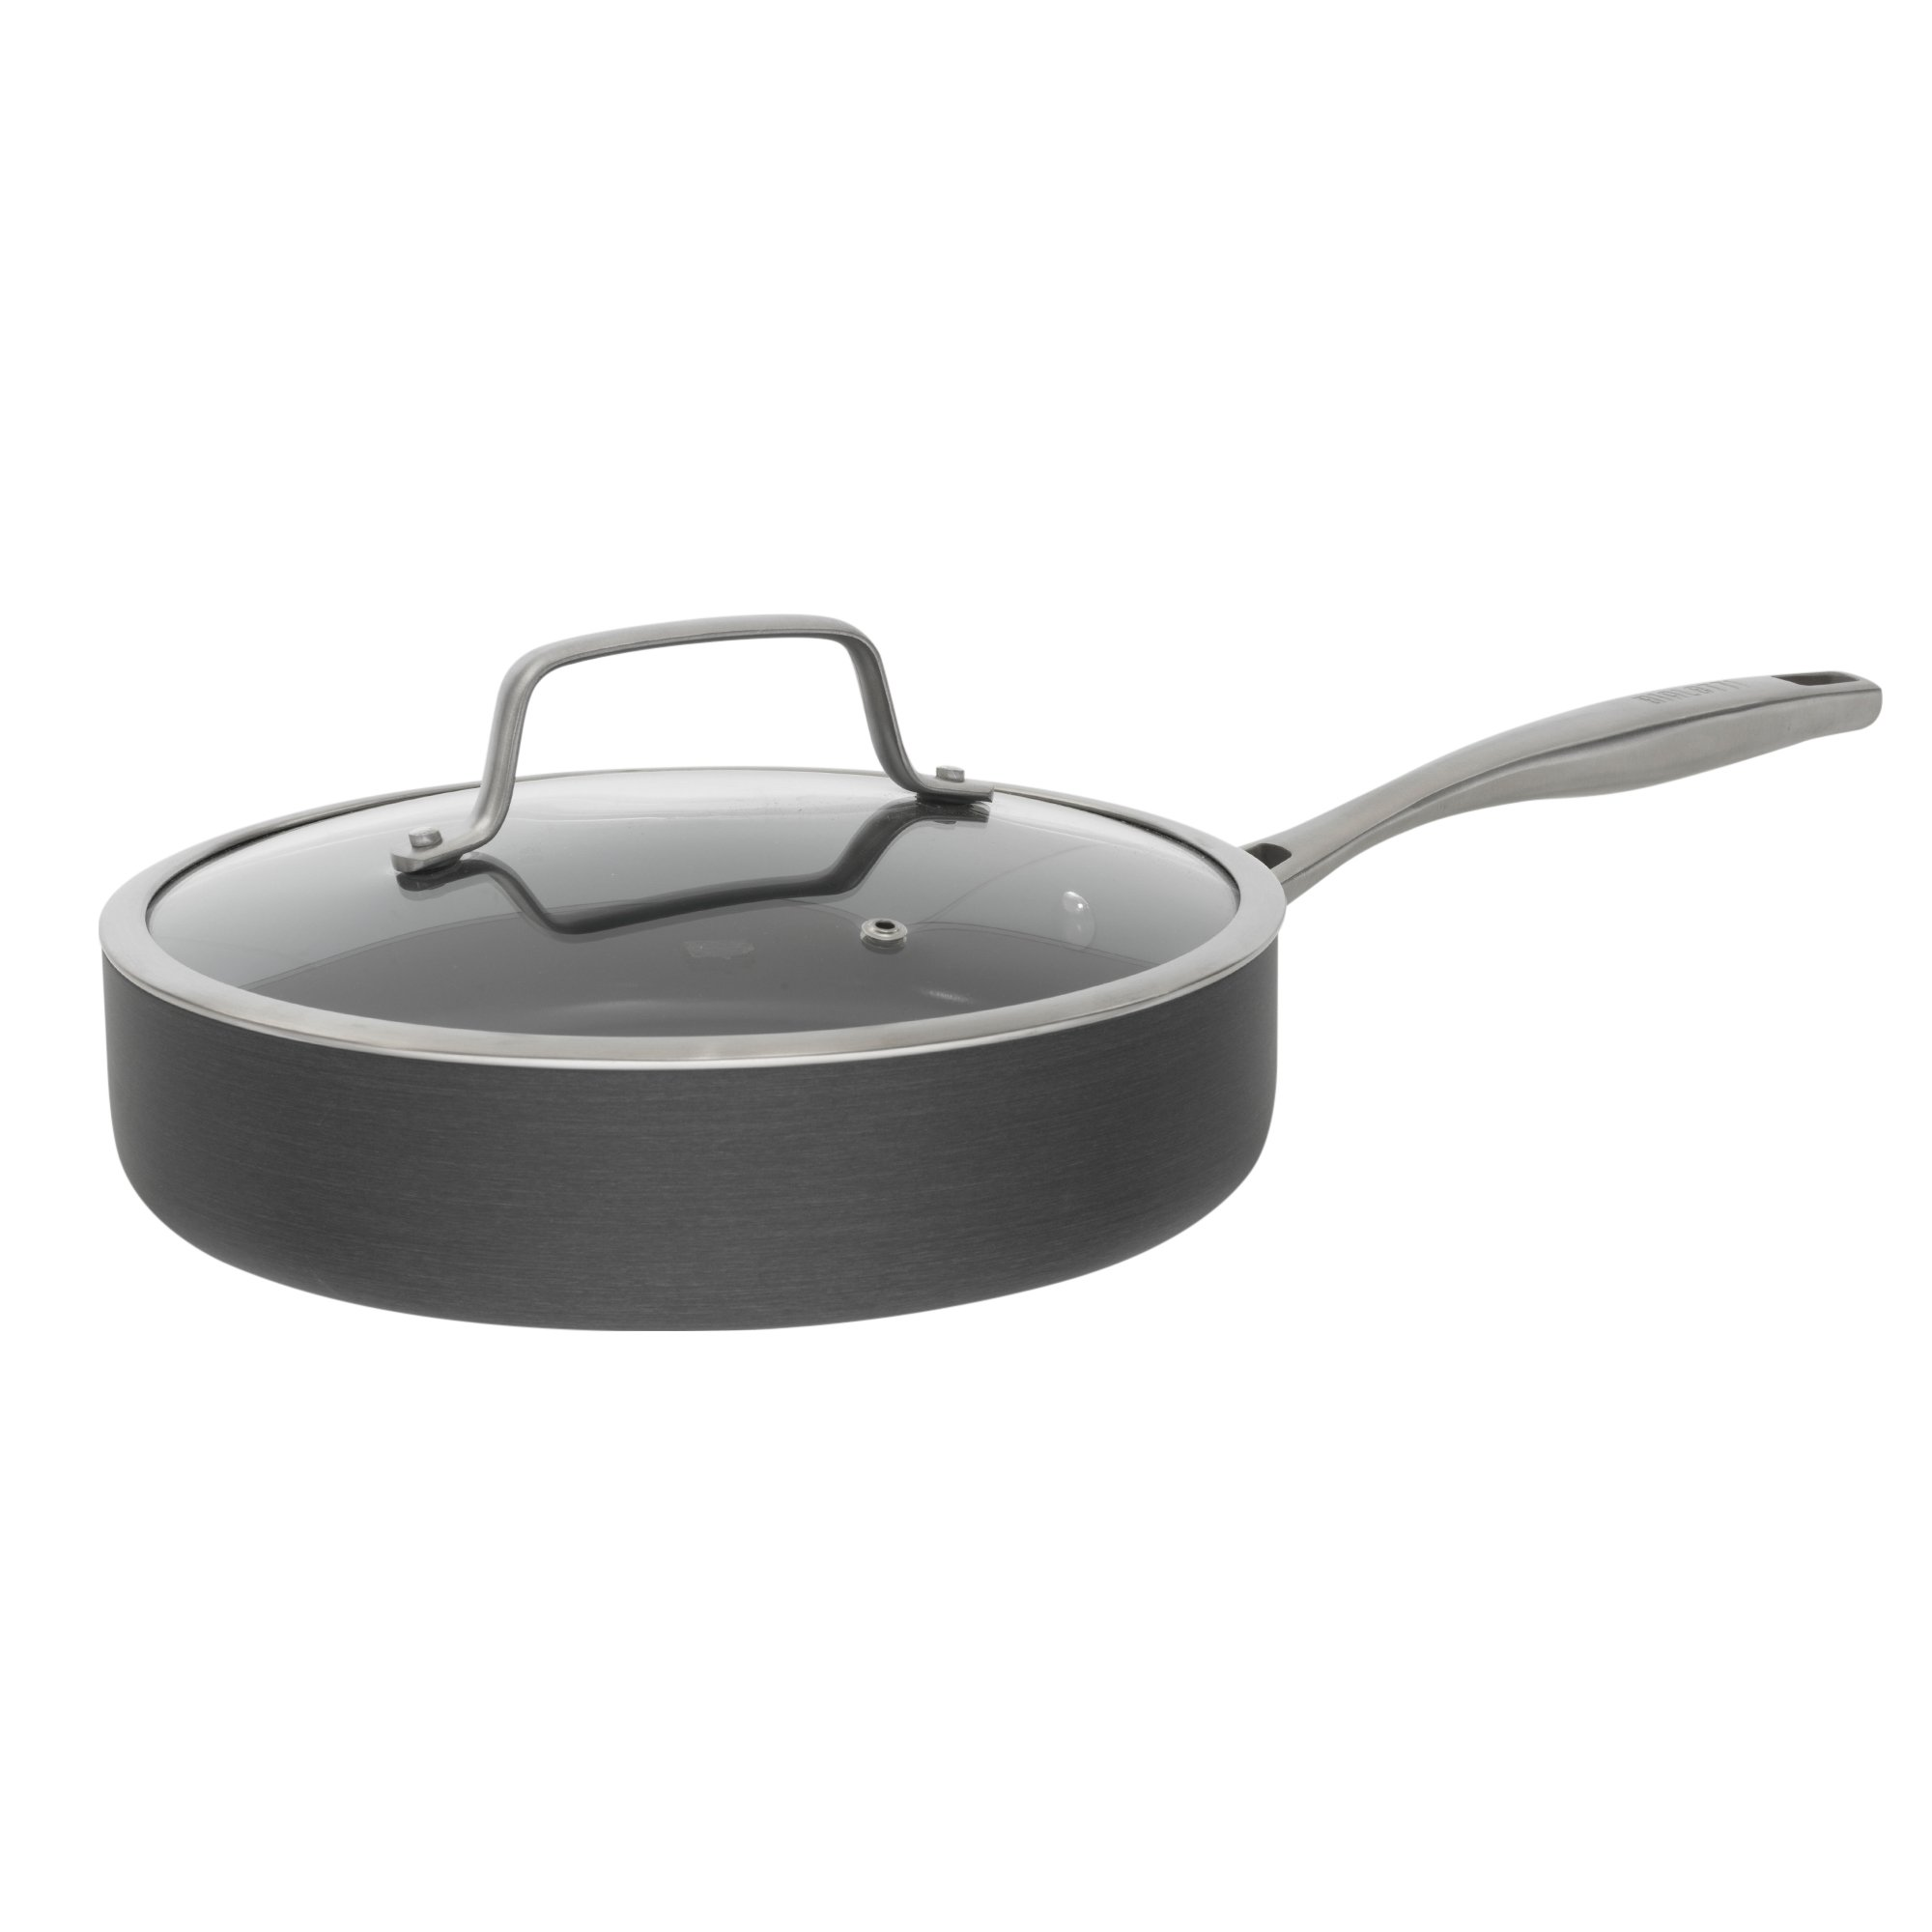 Bialetti Ceramic Pro Hard Anodized Nonstick Deep Saute Pan, 11'', Gray